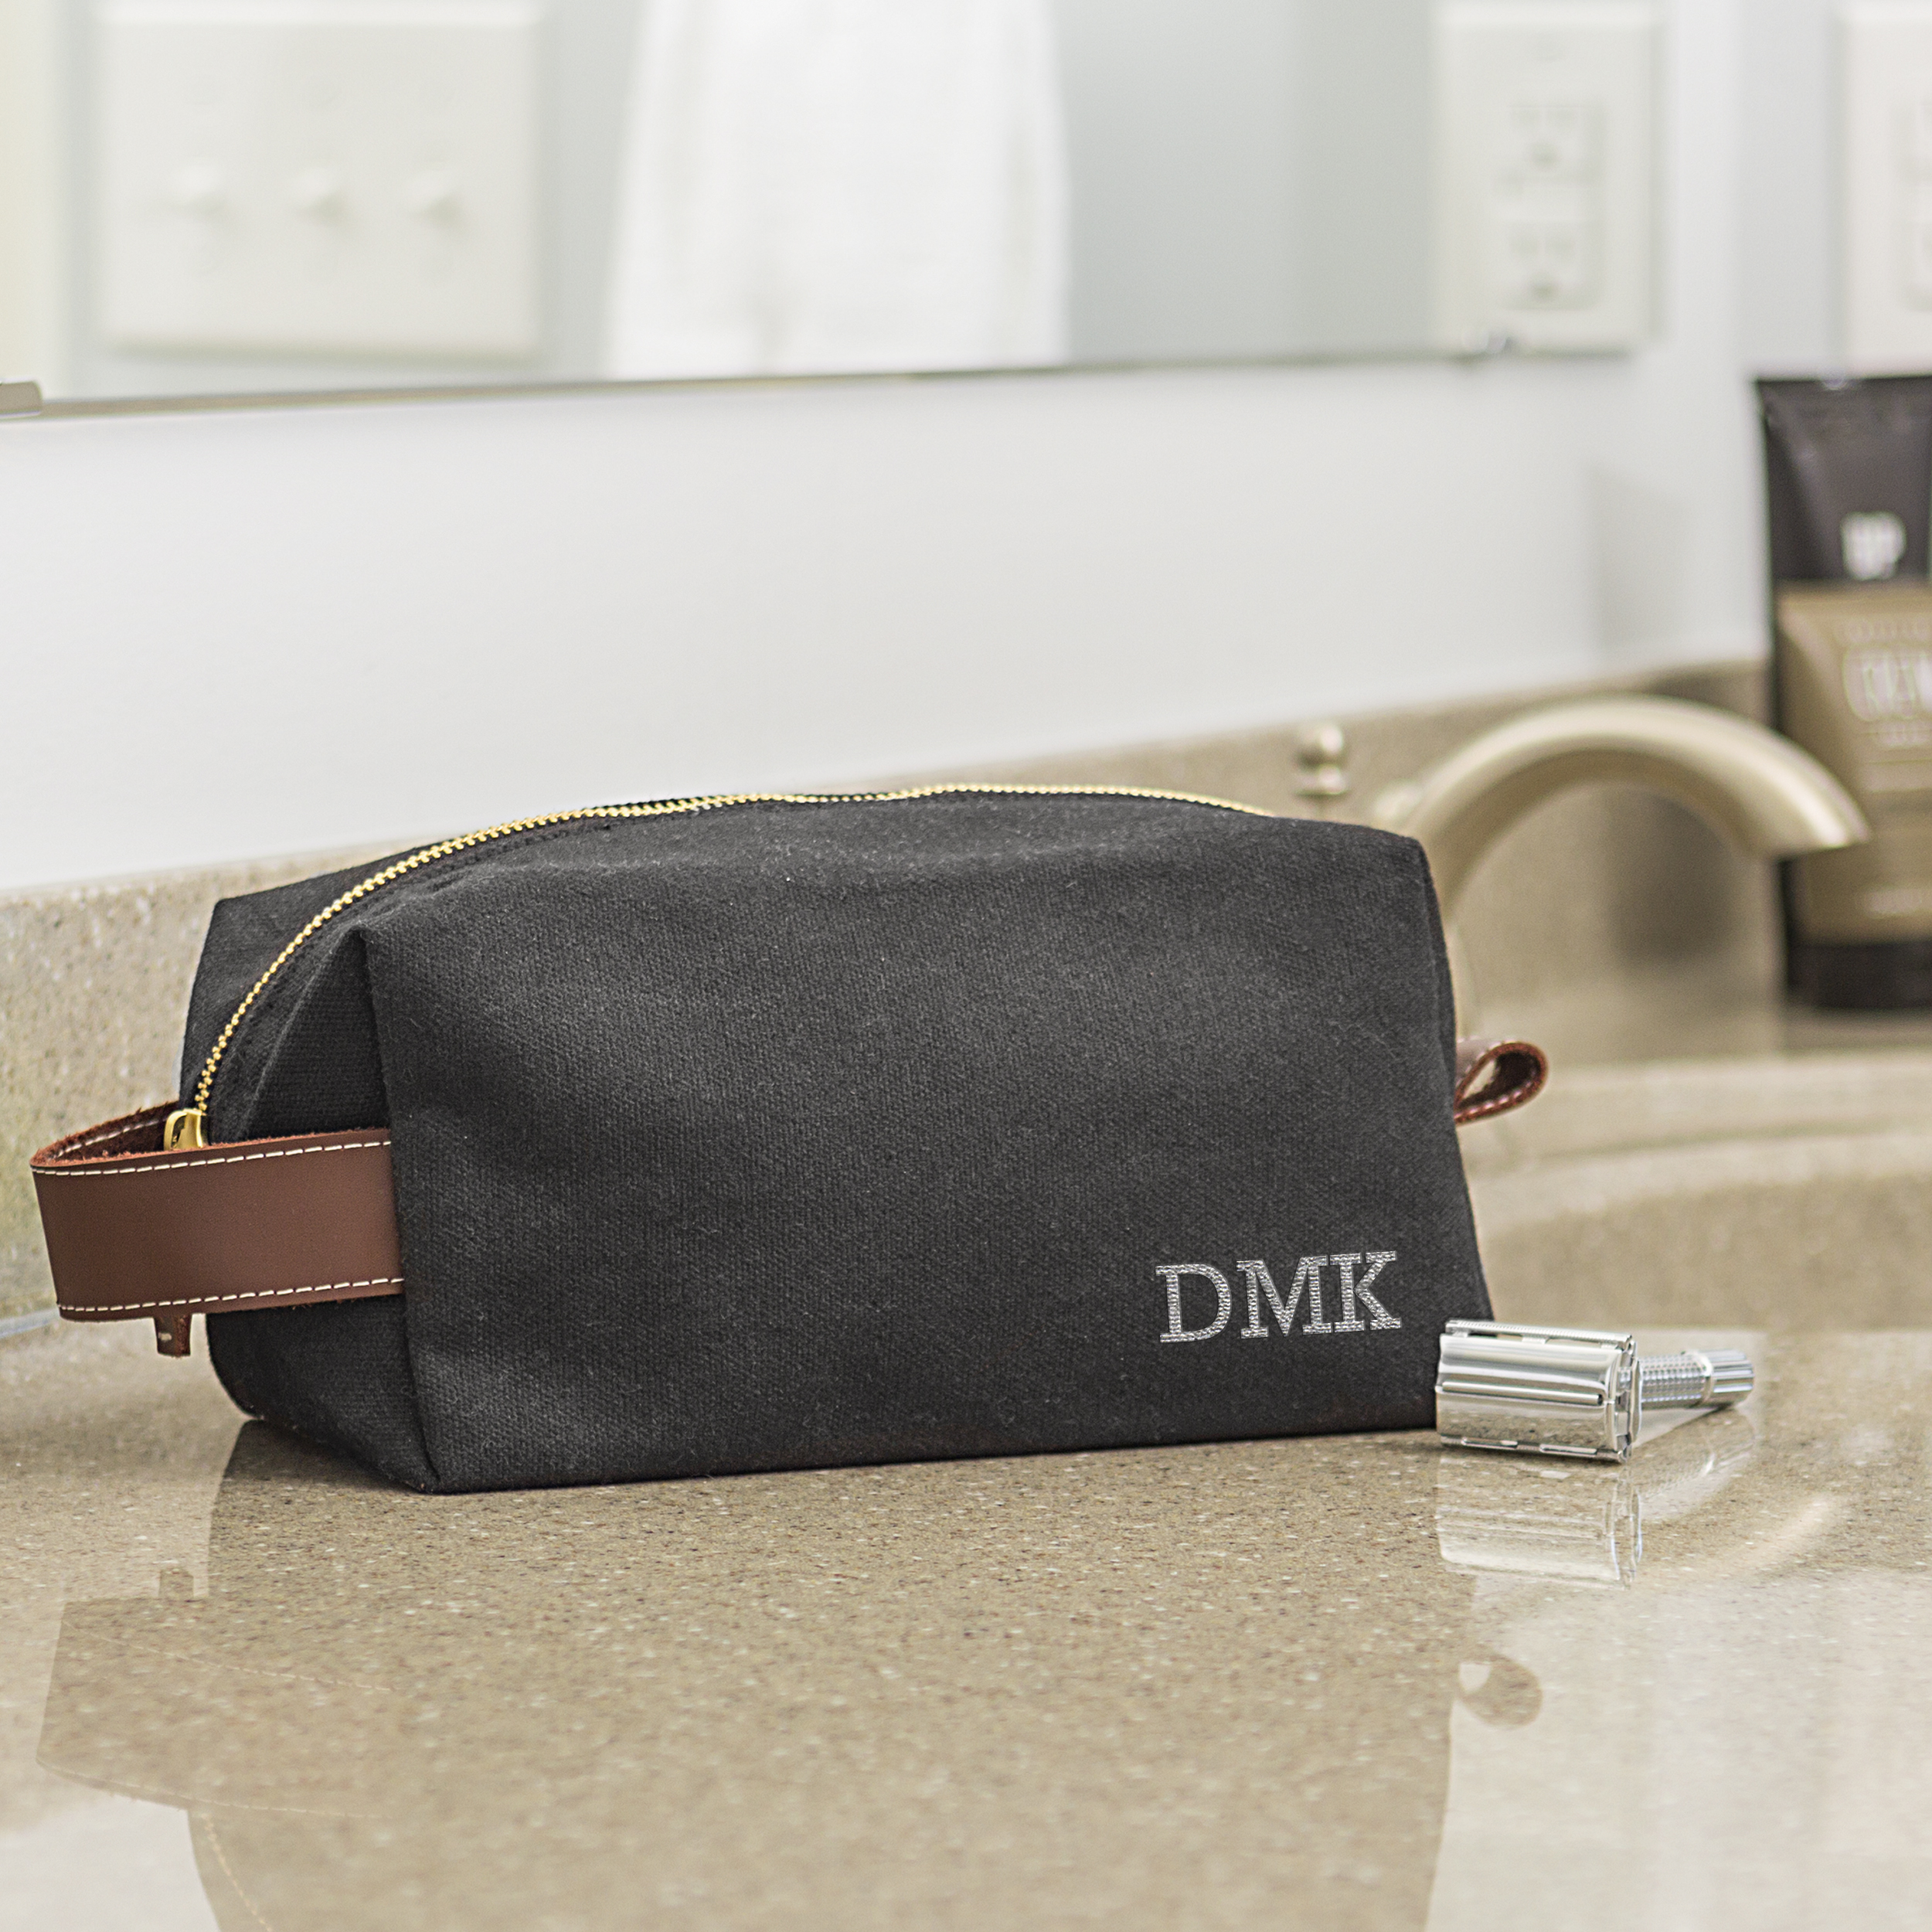 Personalized Men's Waxed Canvas and Leather Dopp Kit, Black